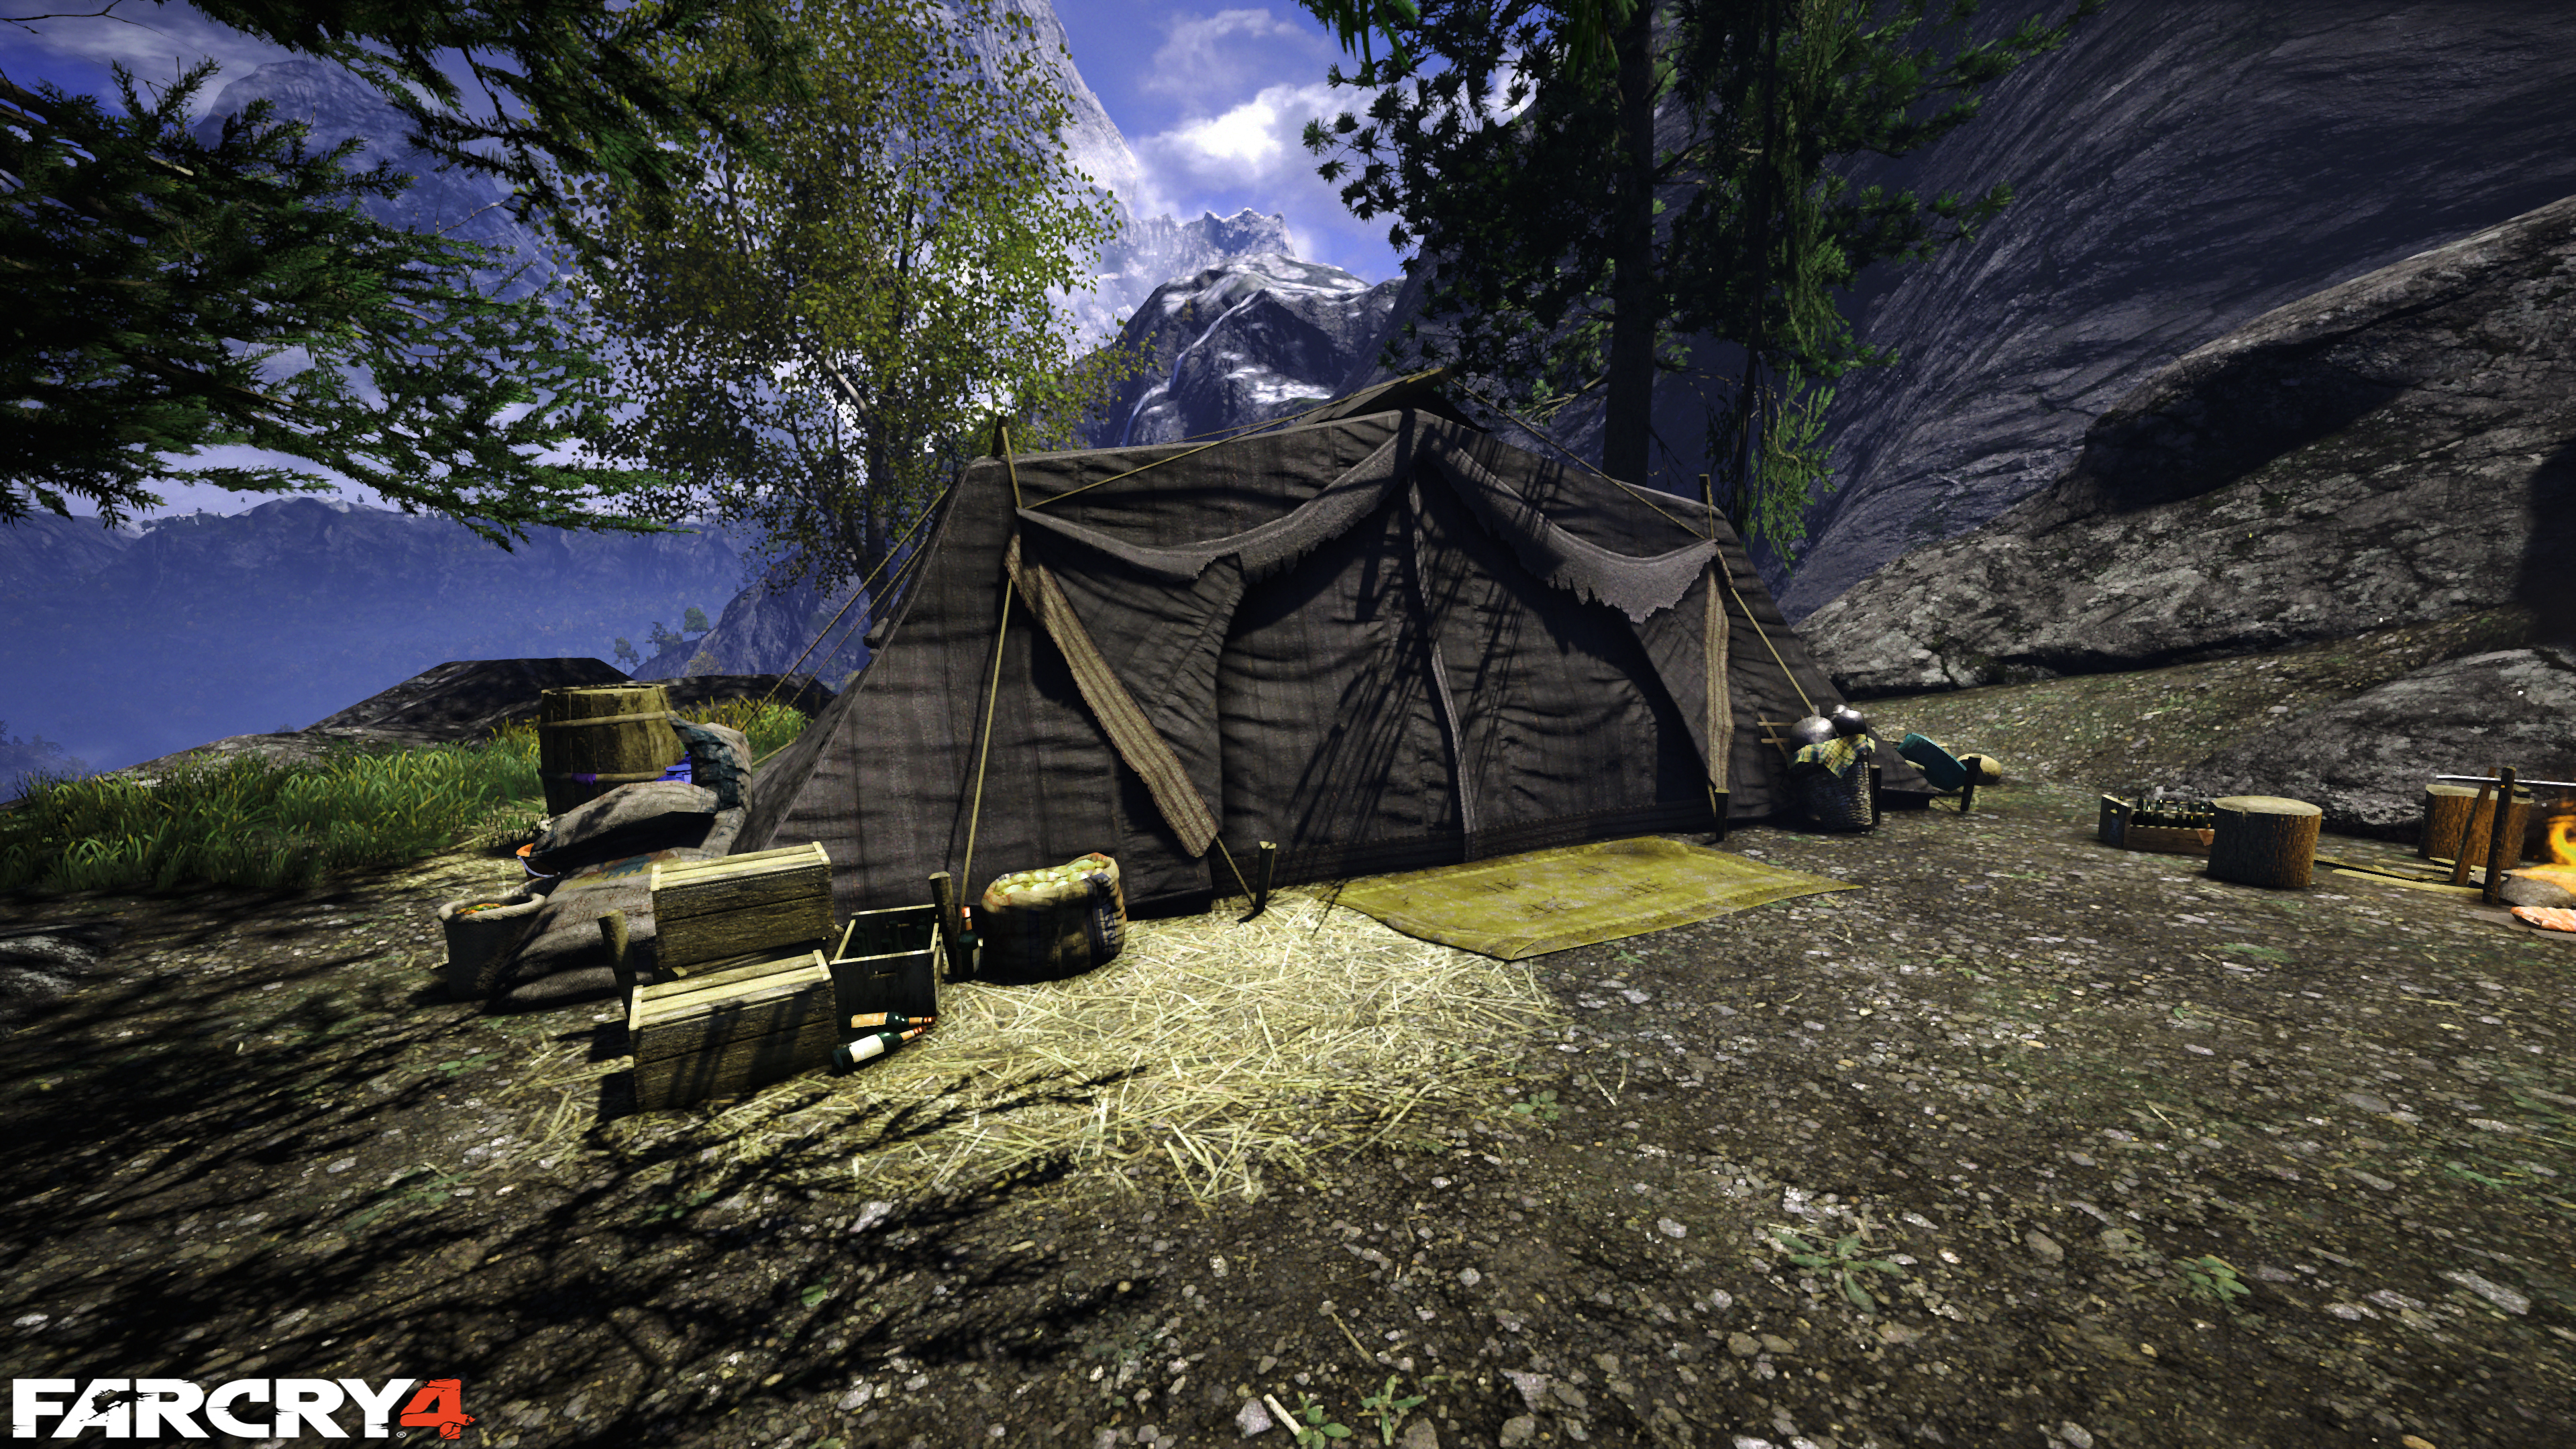 Far Cry 4 Drug Tent Wallpaper 4k! 4k Ultra HD Papel De